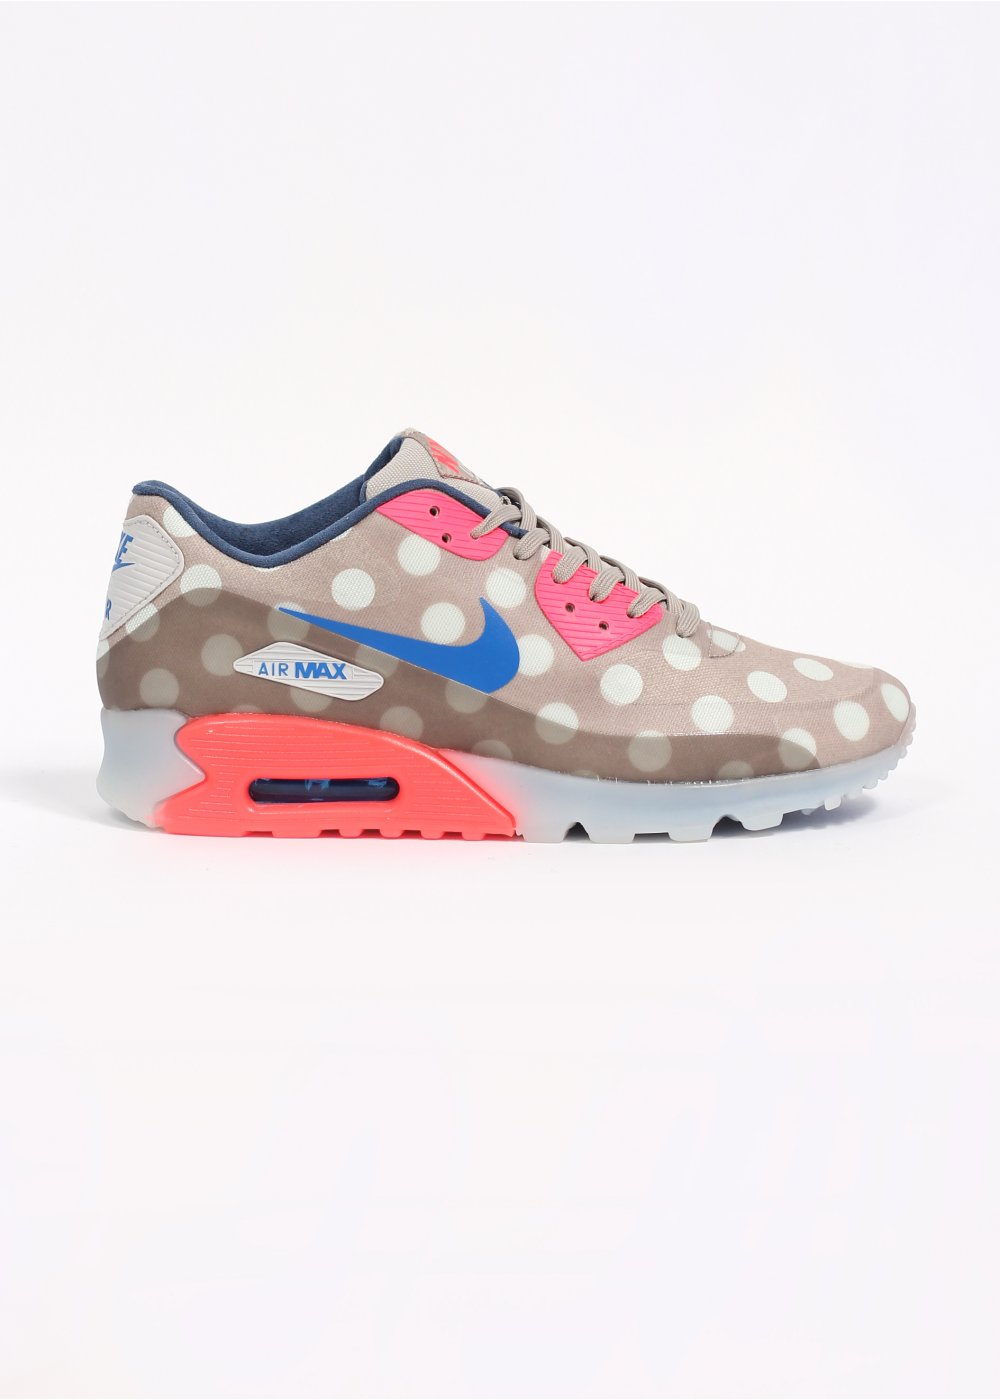 huge selection of 2db80 15ecc Nike Air Max 90 Ice City Series 'NYC' Trainers - Classic Stone ...